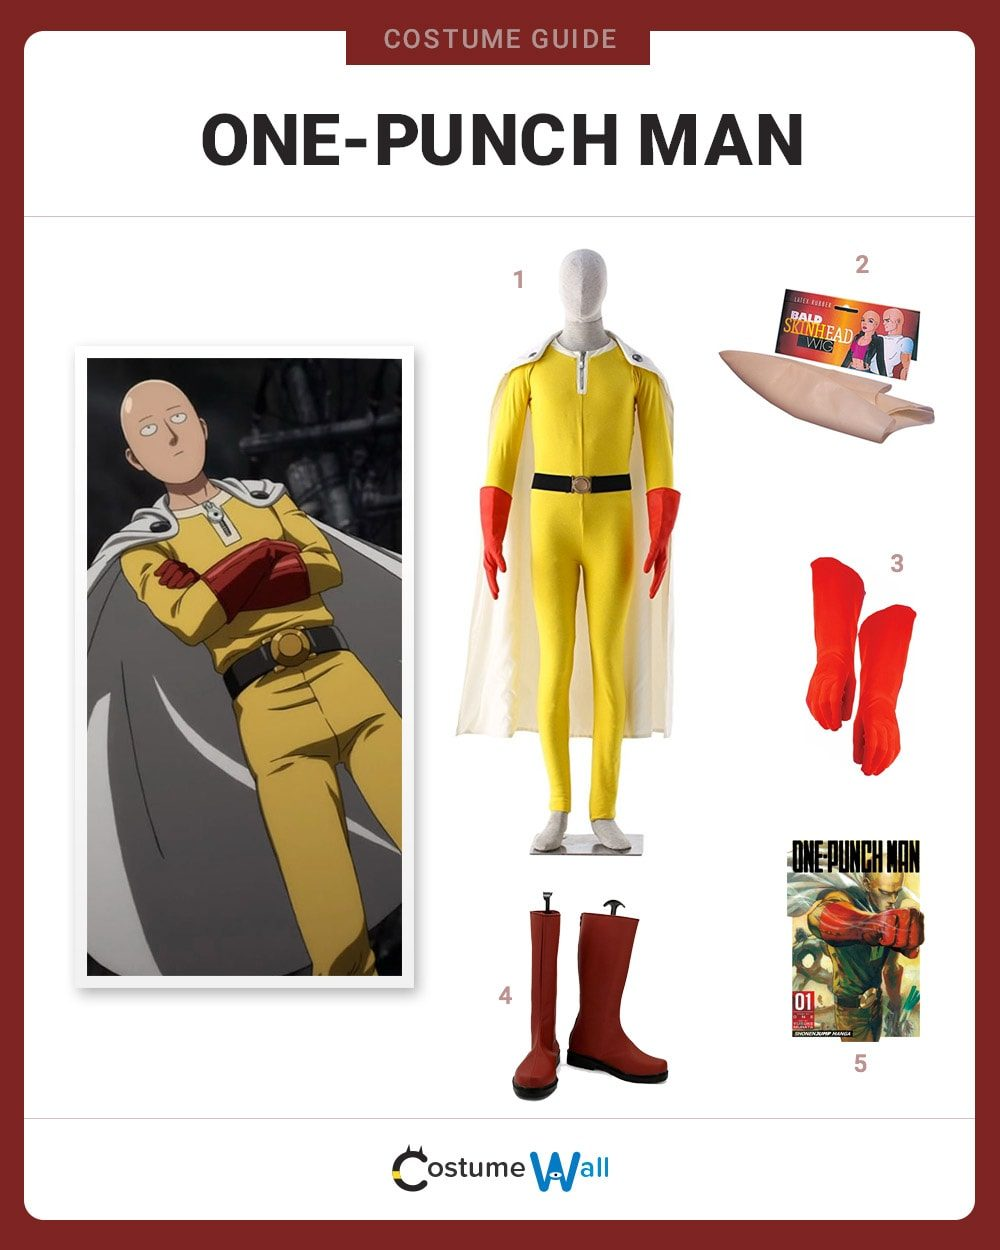 One-Punch Man Costume Guide